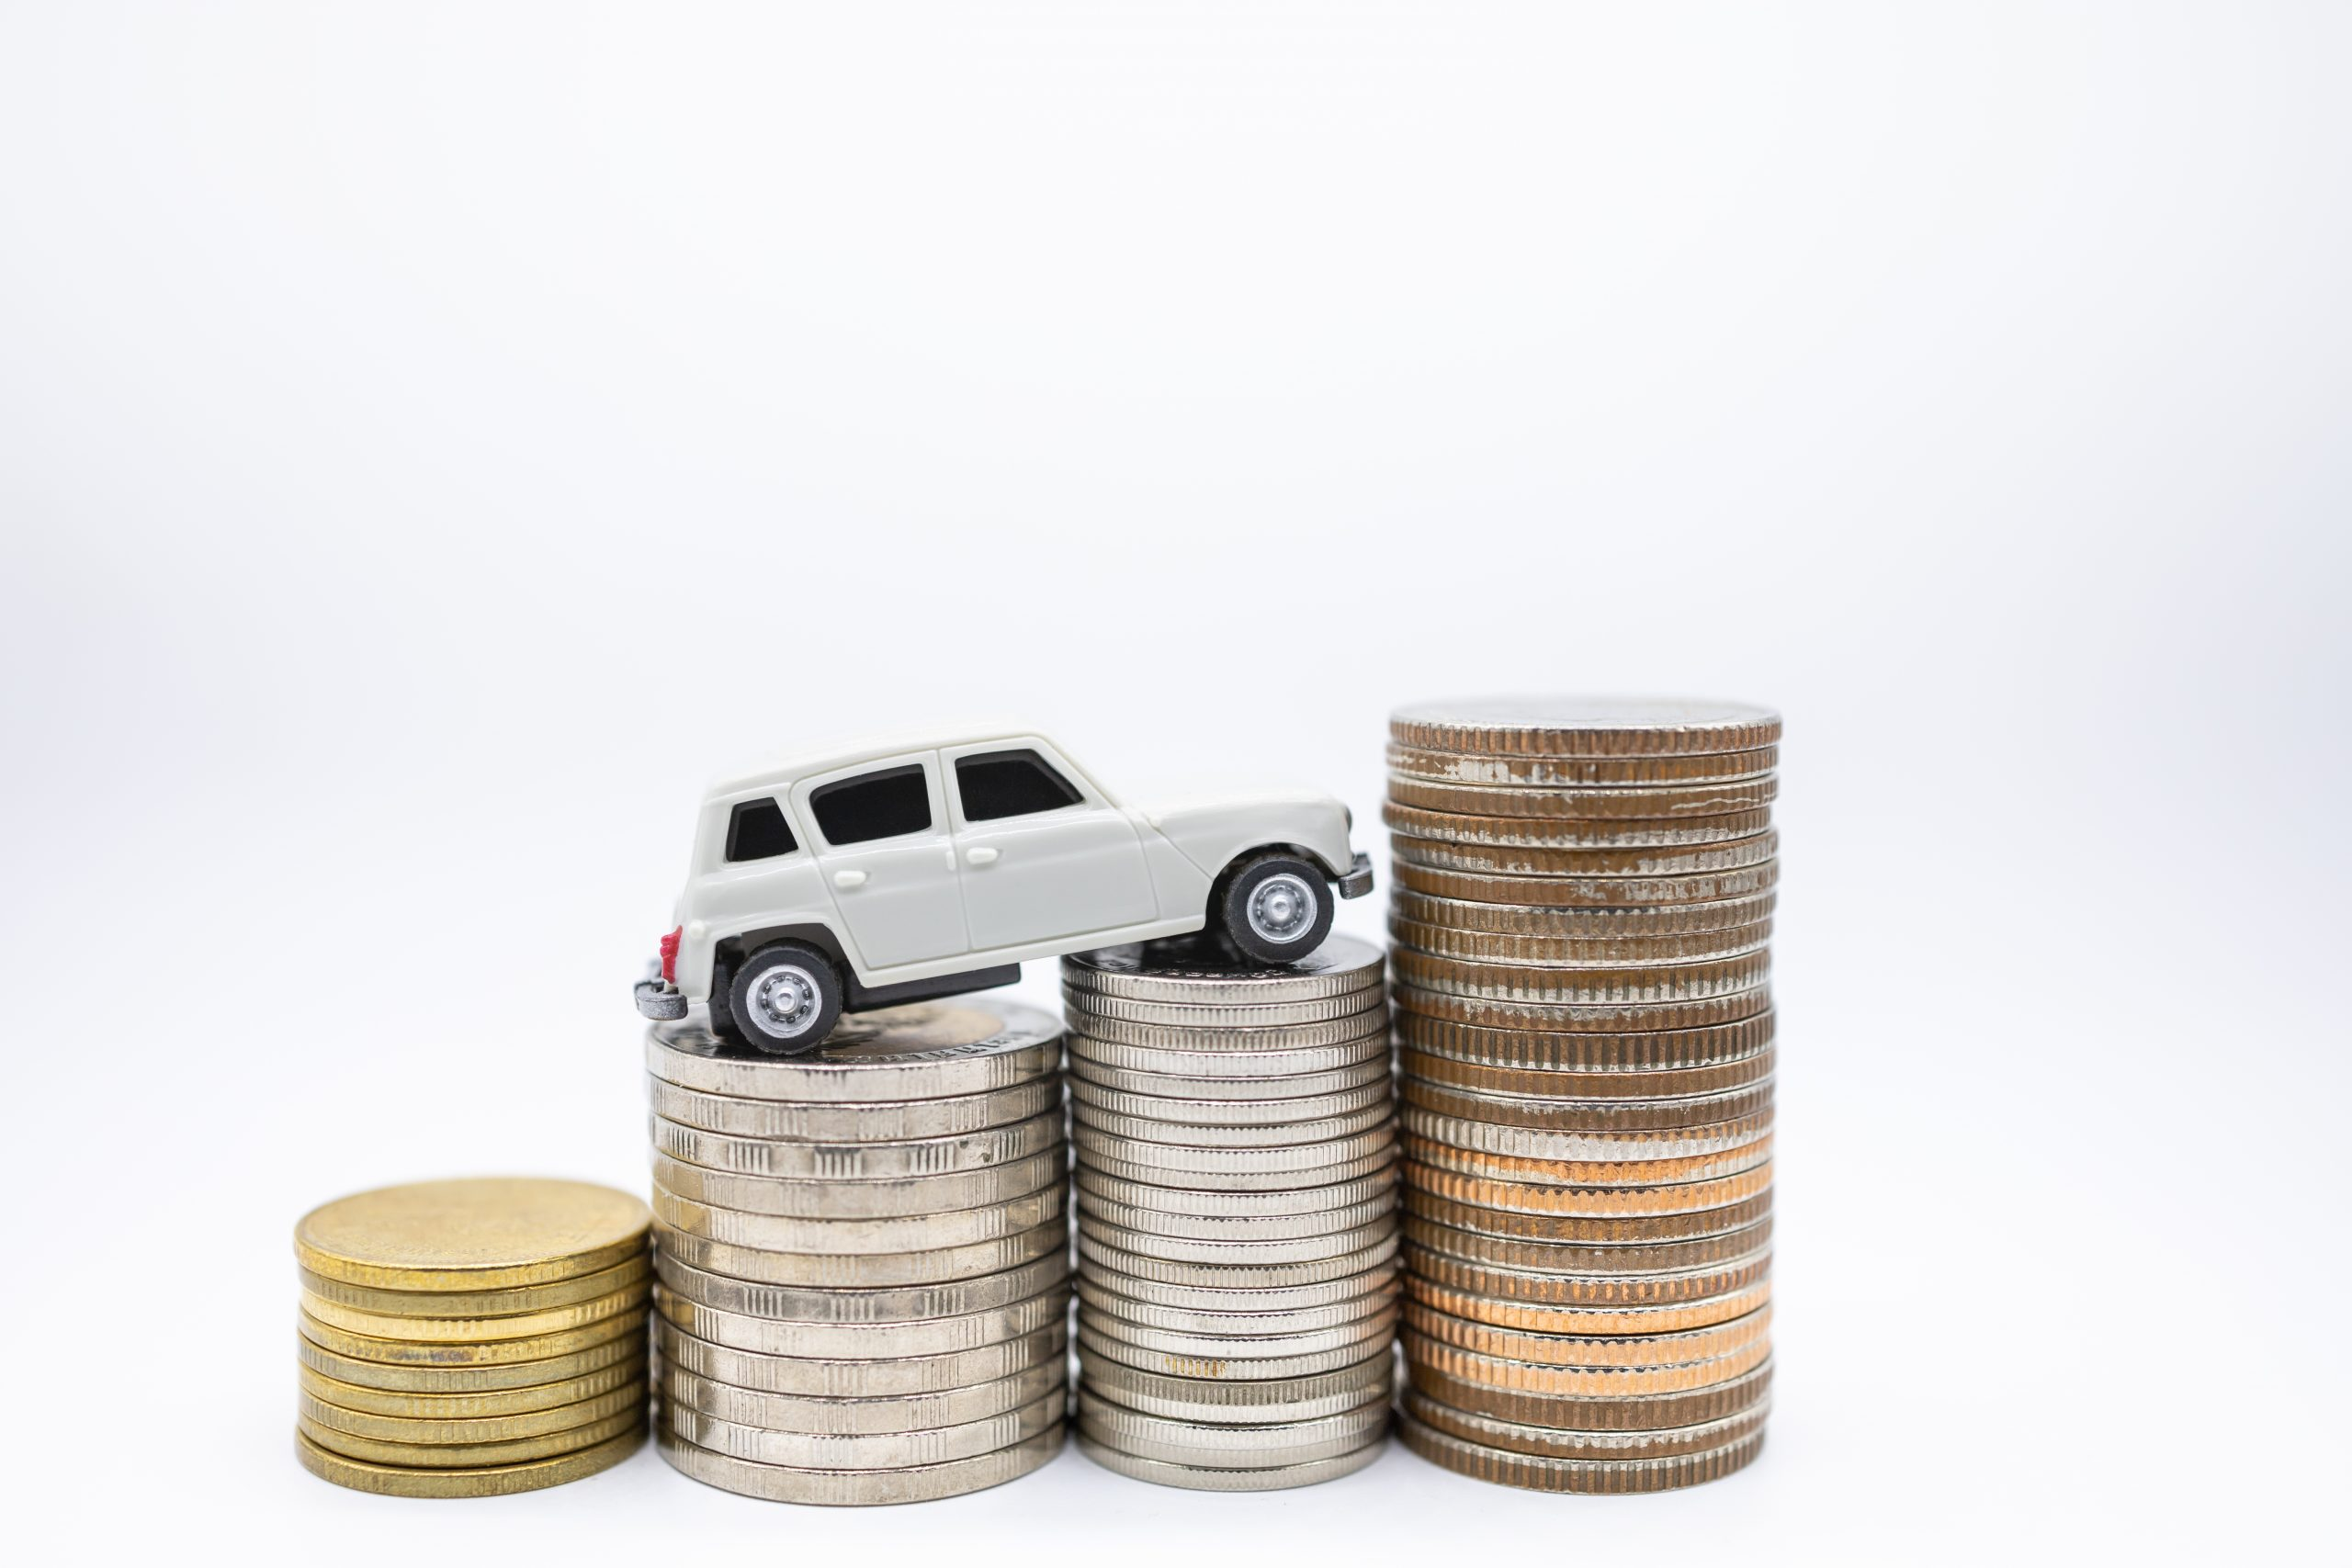 DirectAsia Insurance_white toy car on stacks of coins, tax